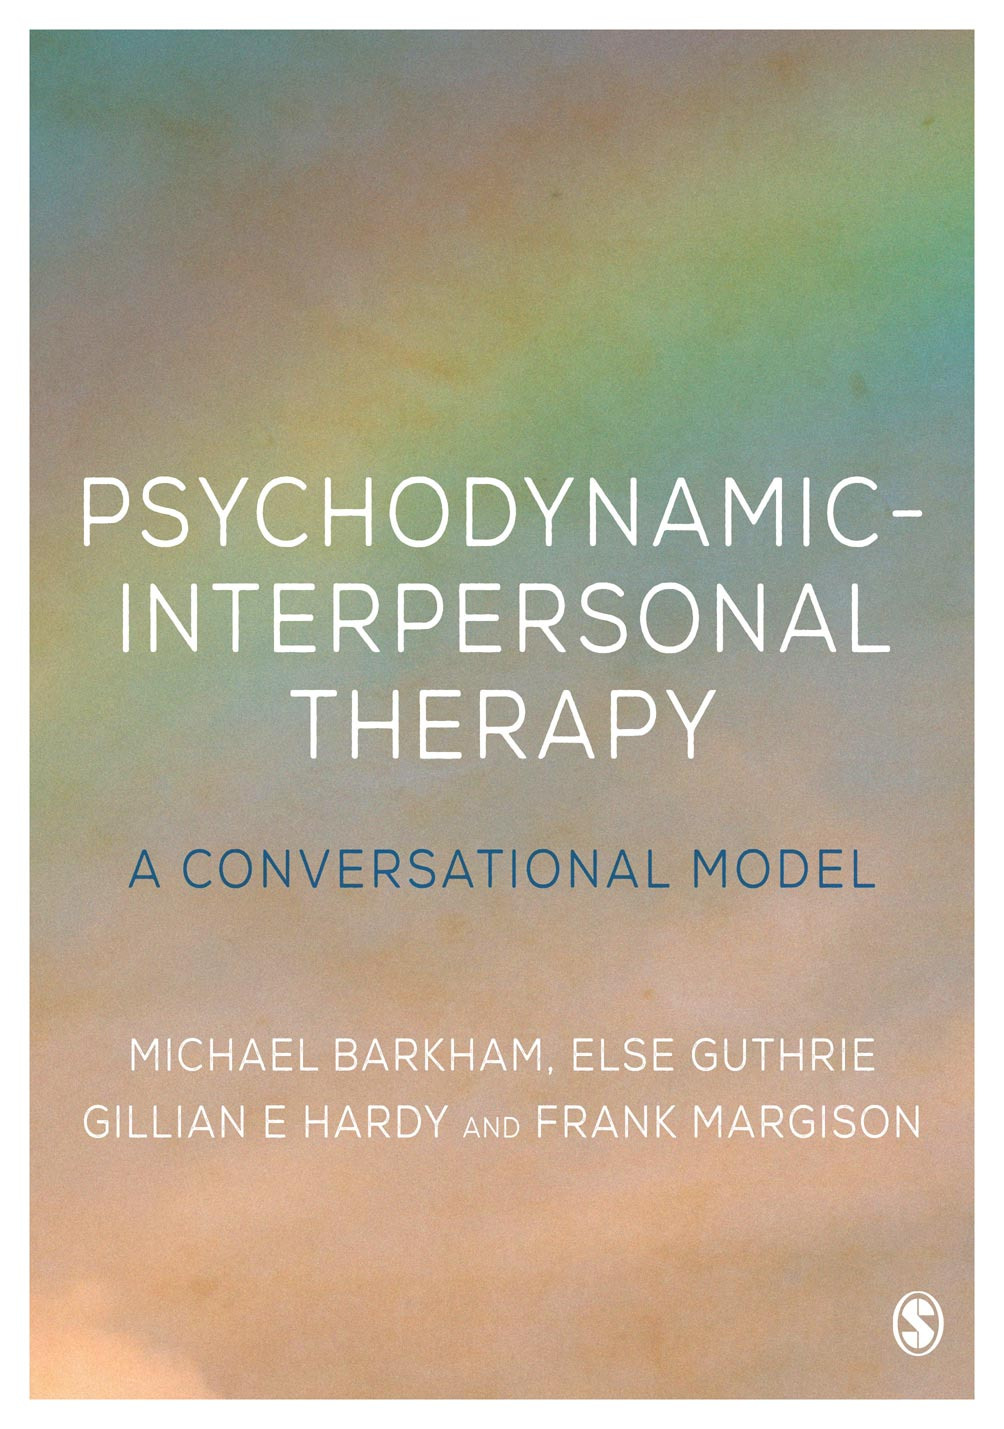 Psychodynamic-Interpersonal Therapy: A Conversational Model  book cover